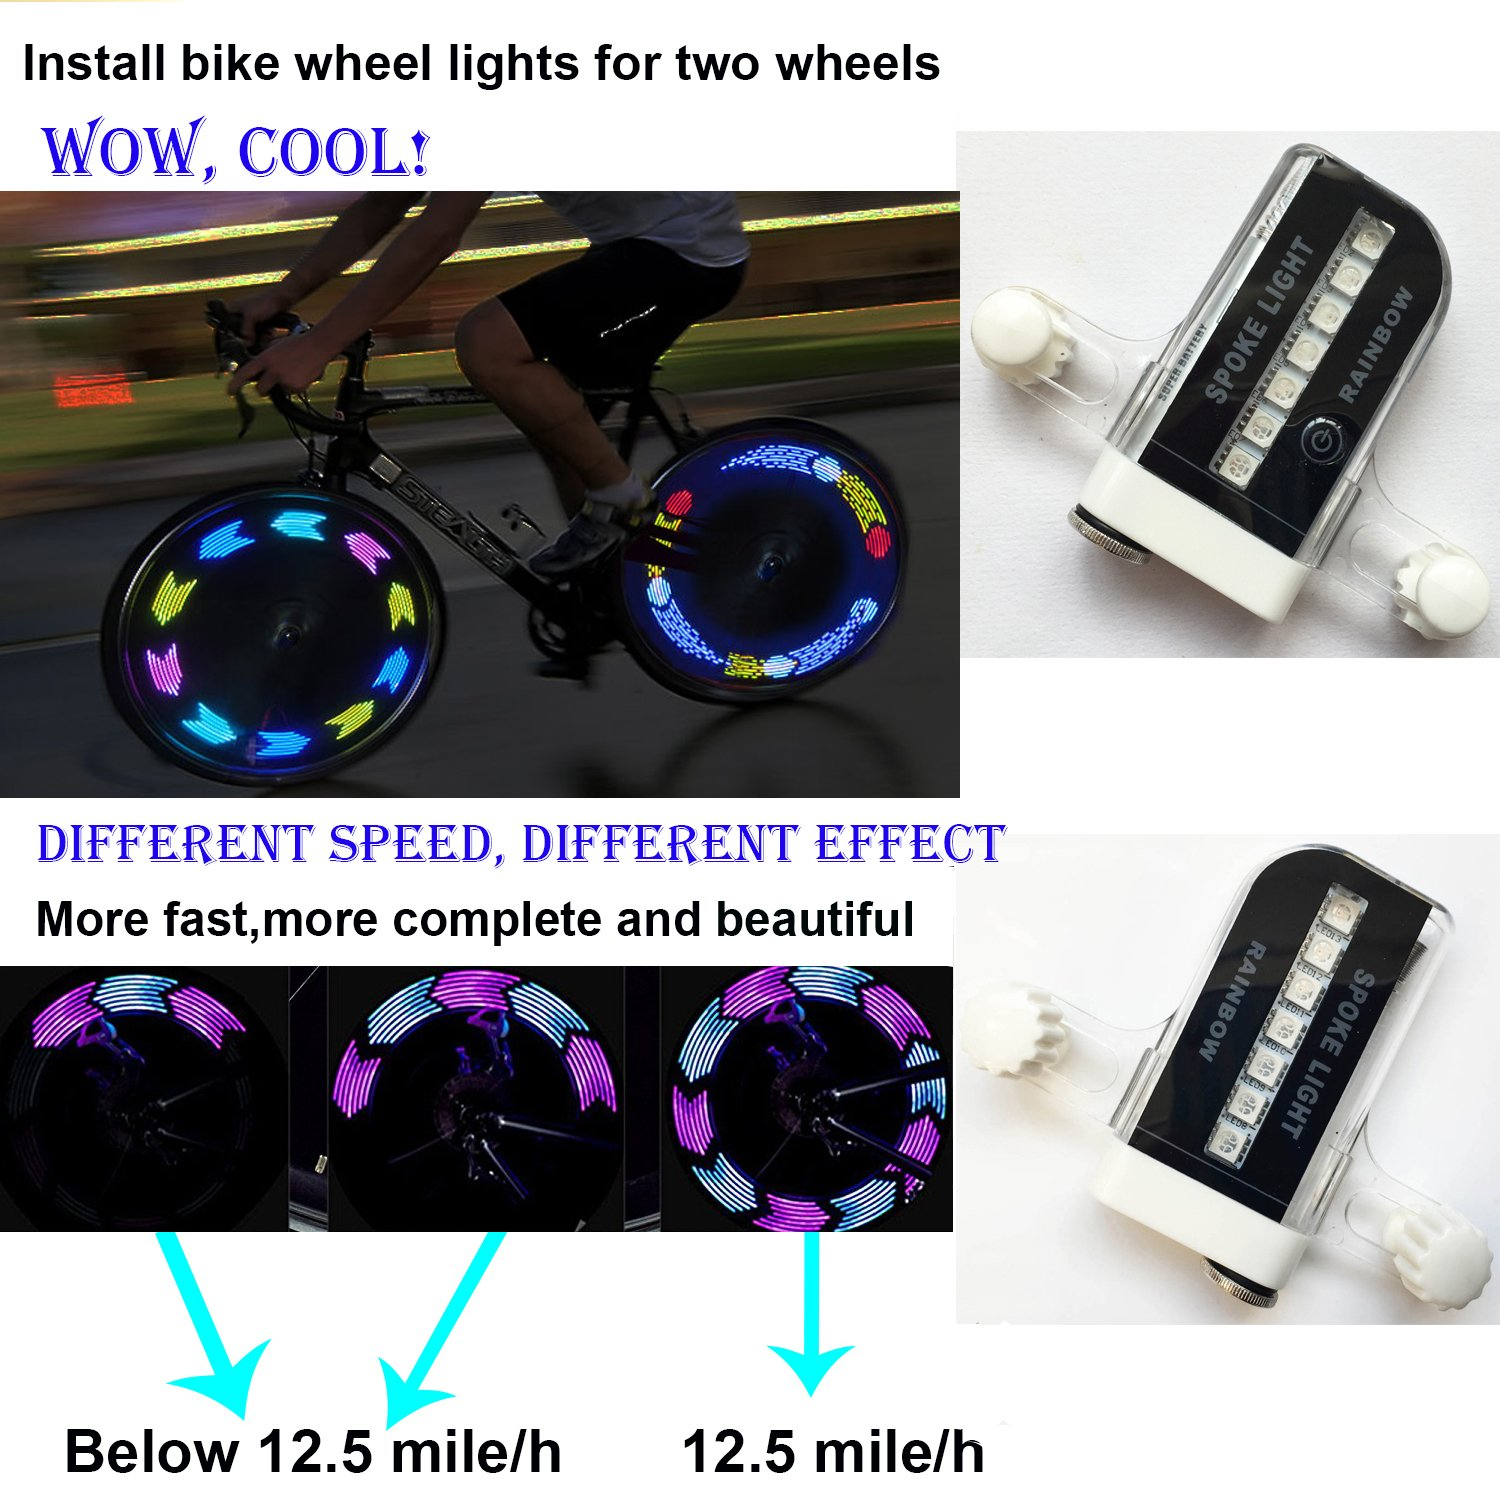 QANGEL Bike Wheel Lights,Waterproof Bike Spoke Lights Ultra Bright 14 LED Bicycle Wheel Lights,Safety Cool RGB Bike Tire Light for Kids Adults,30 Patterns Changes, Auto & Manual Dual Switch (2 Pack) by QANGEL (Image #2)